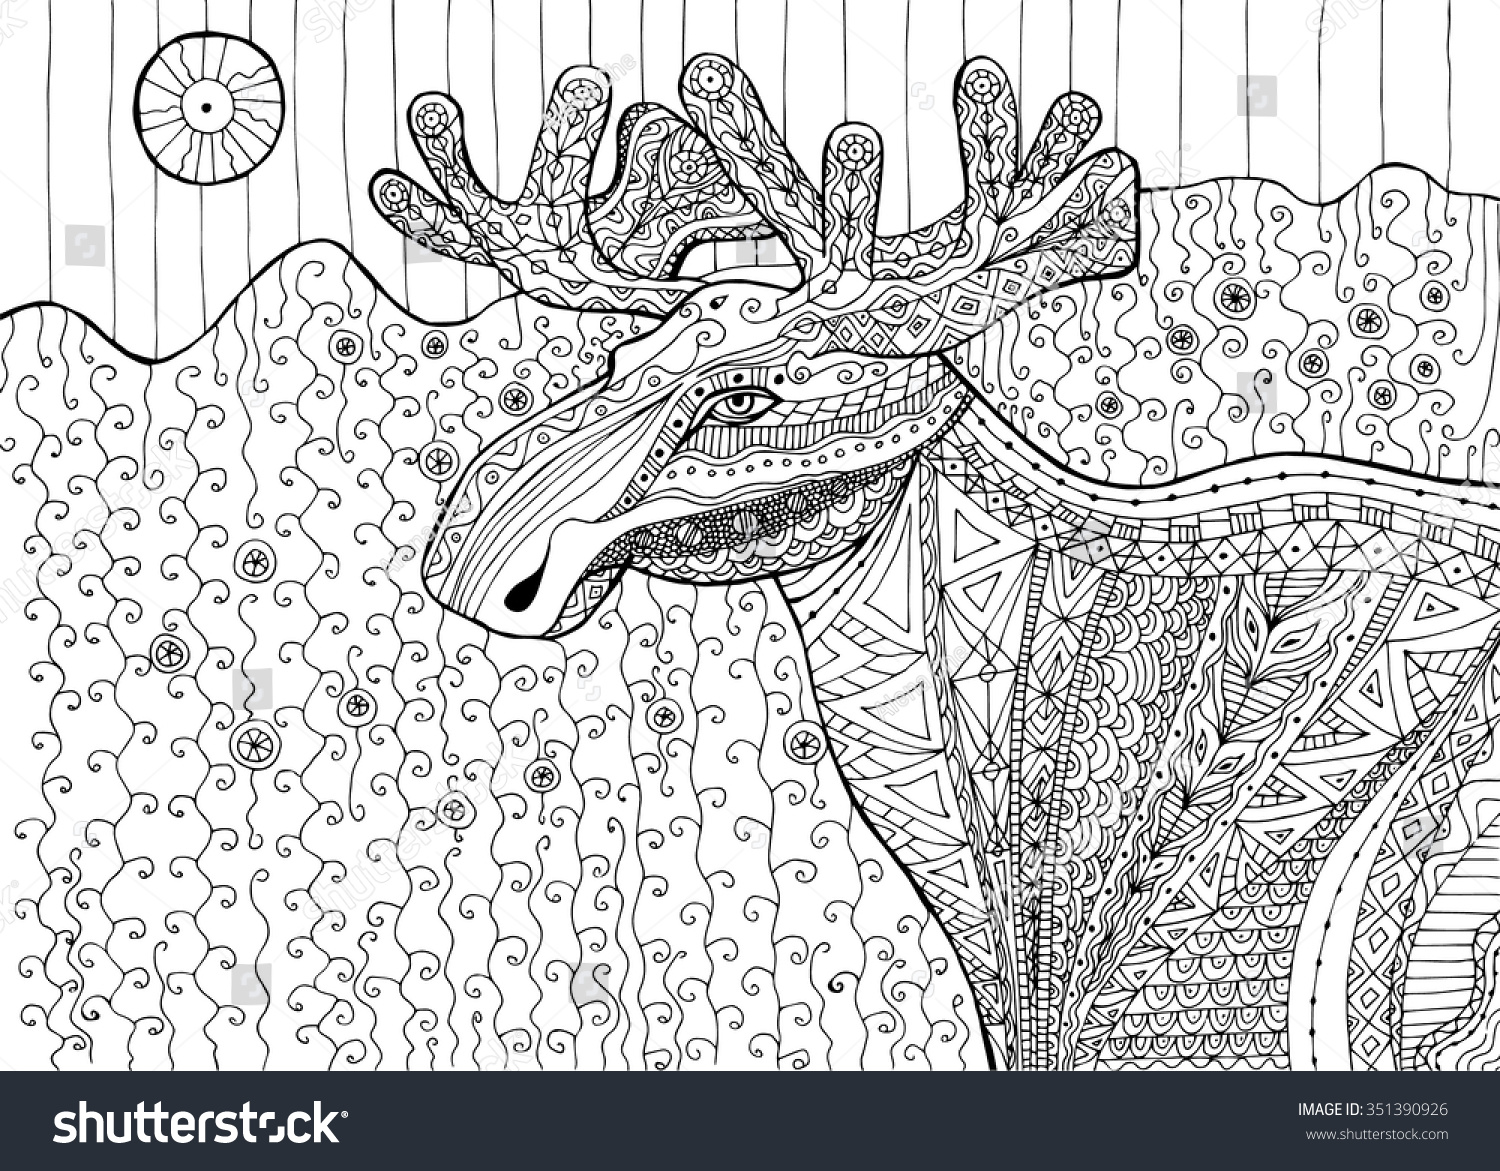 black white drawing elk pattern coloring stock vector 351390926